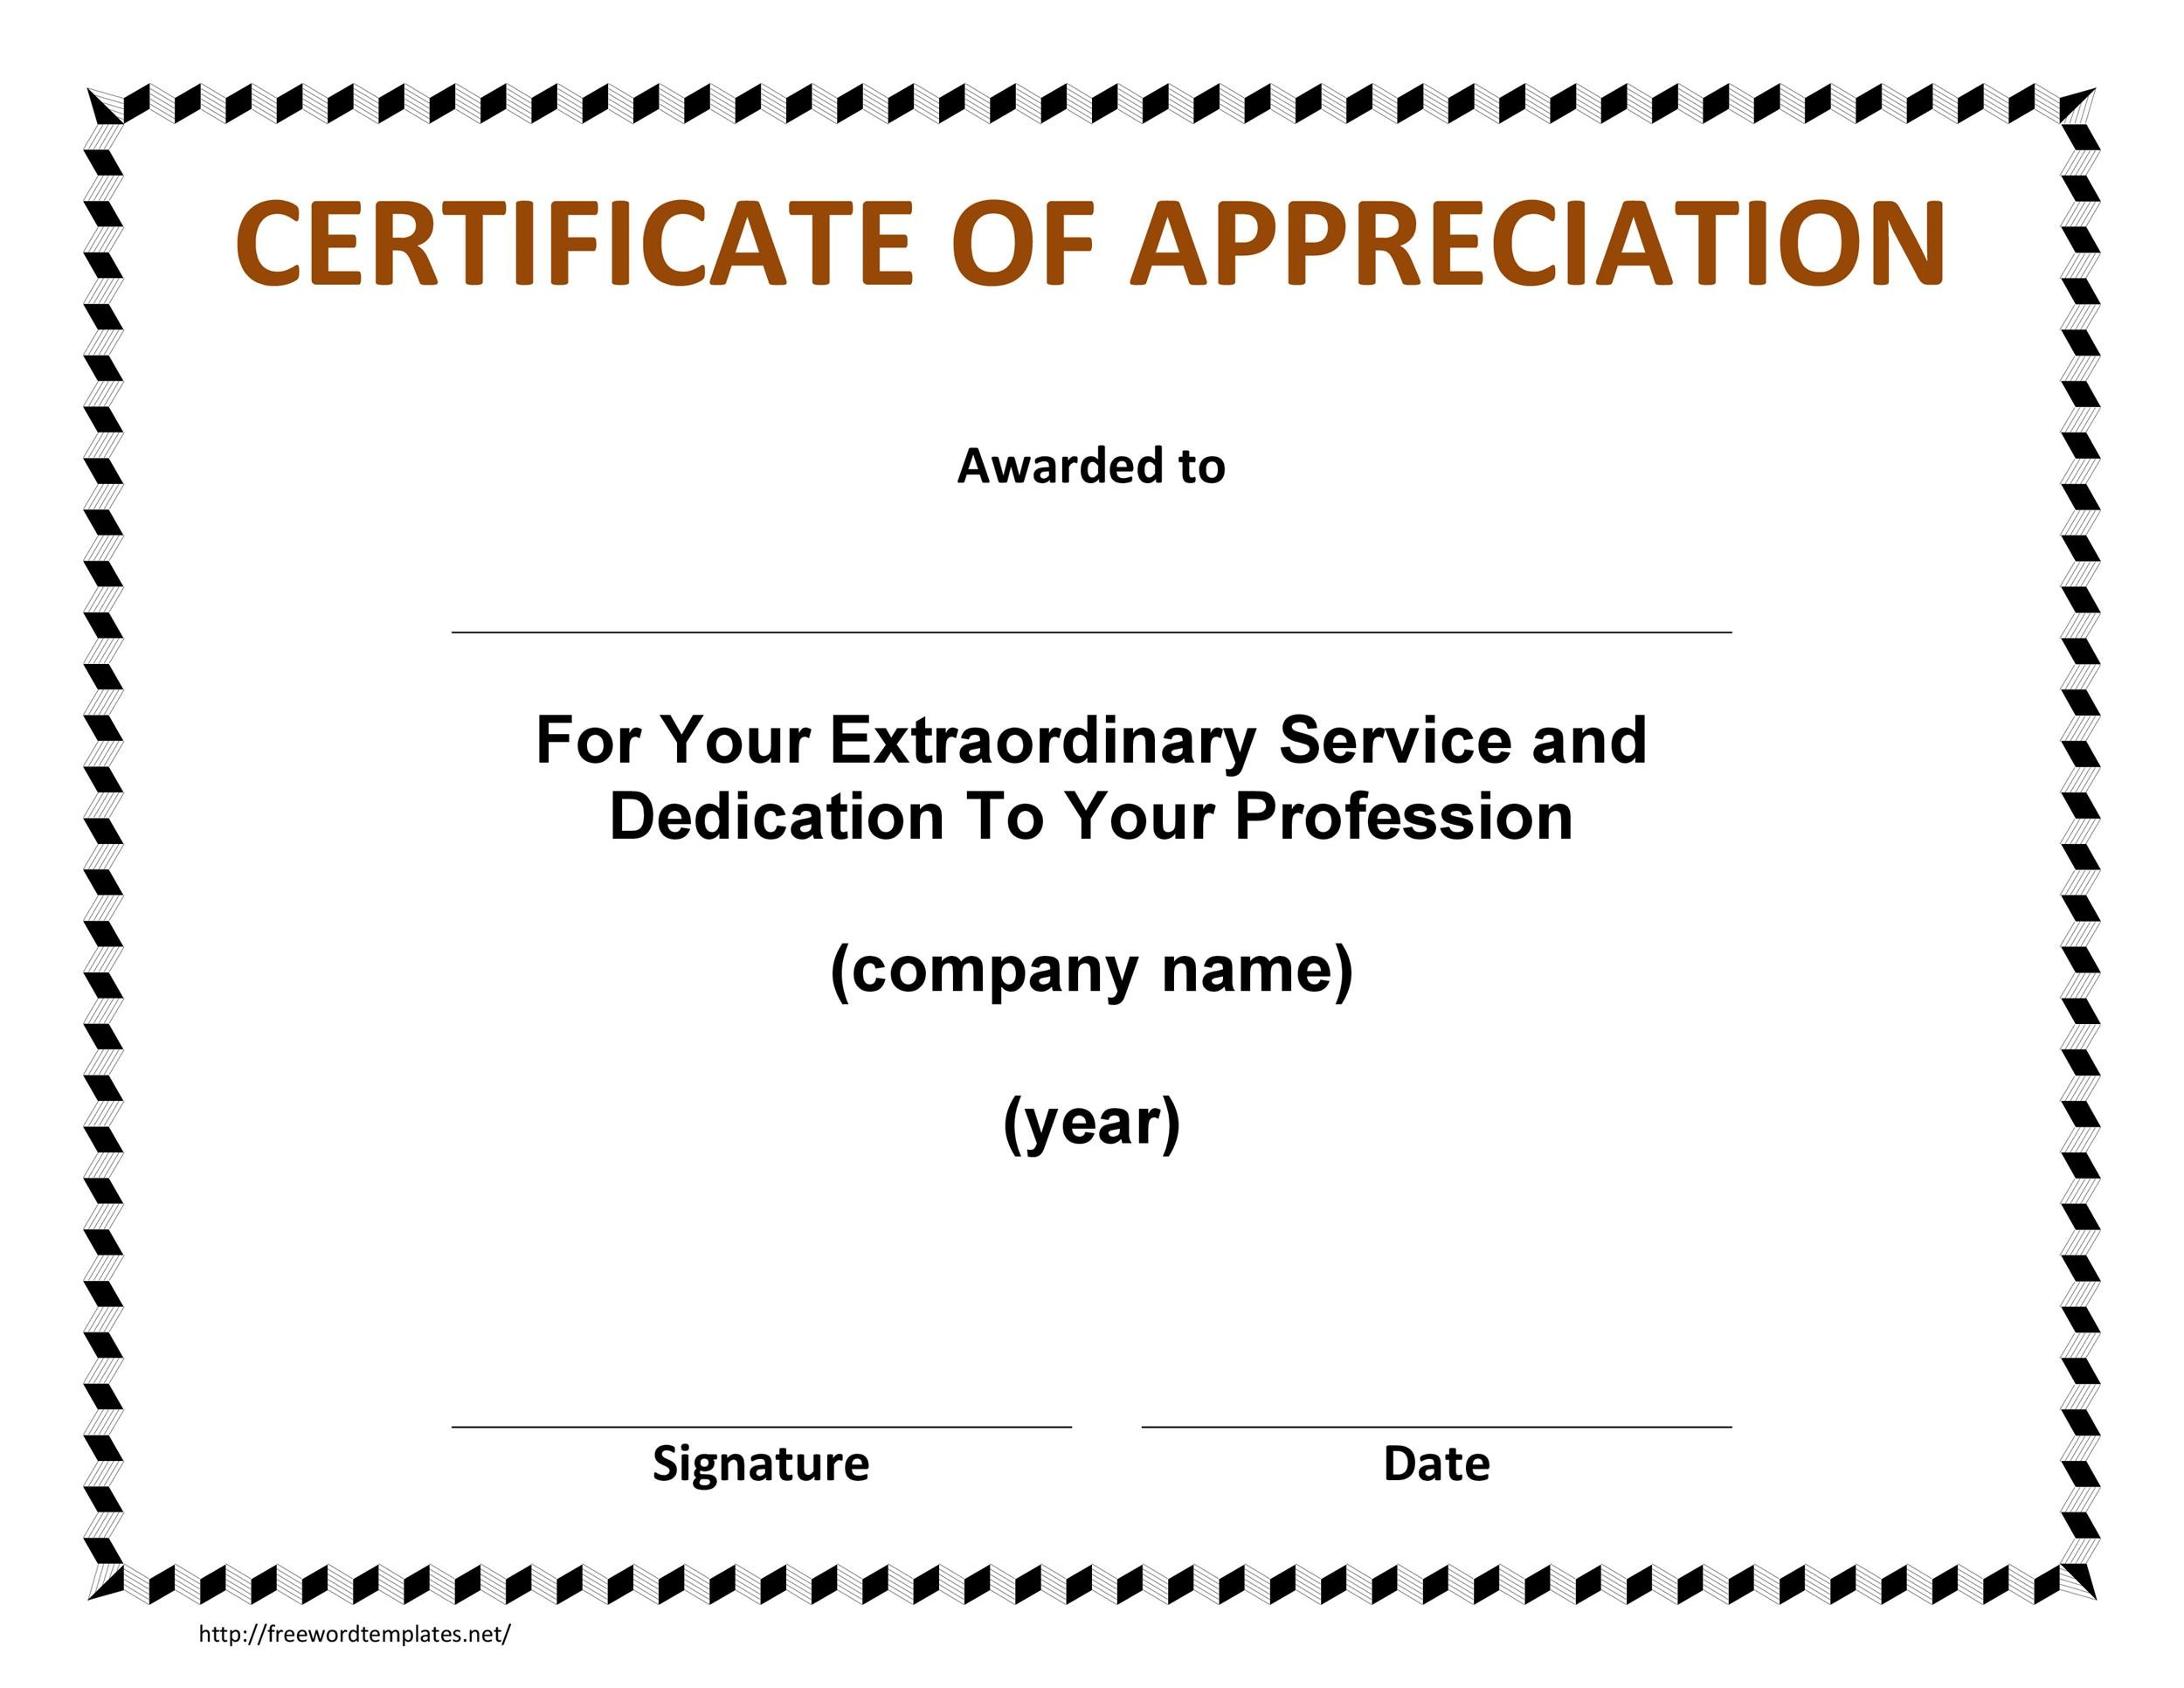 30 free certificate of appreciation templates and letters free certificate of appreciation 04 spiritdancerdesigns Choice Image